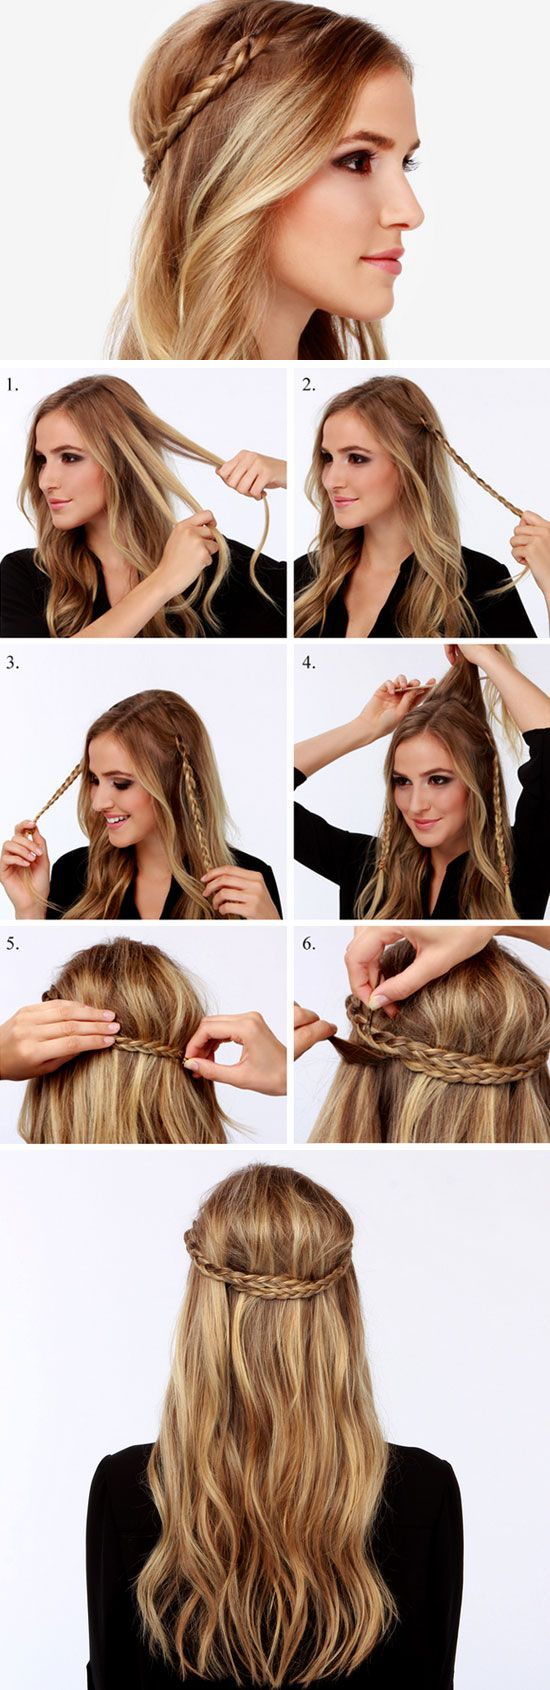 118 best hairstyles images on pinterest | hairstyles, braids and